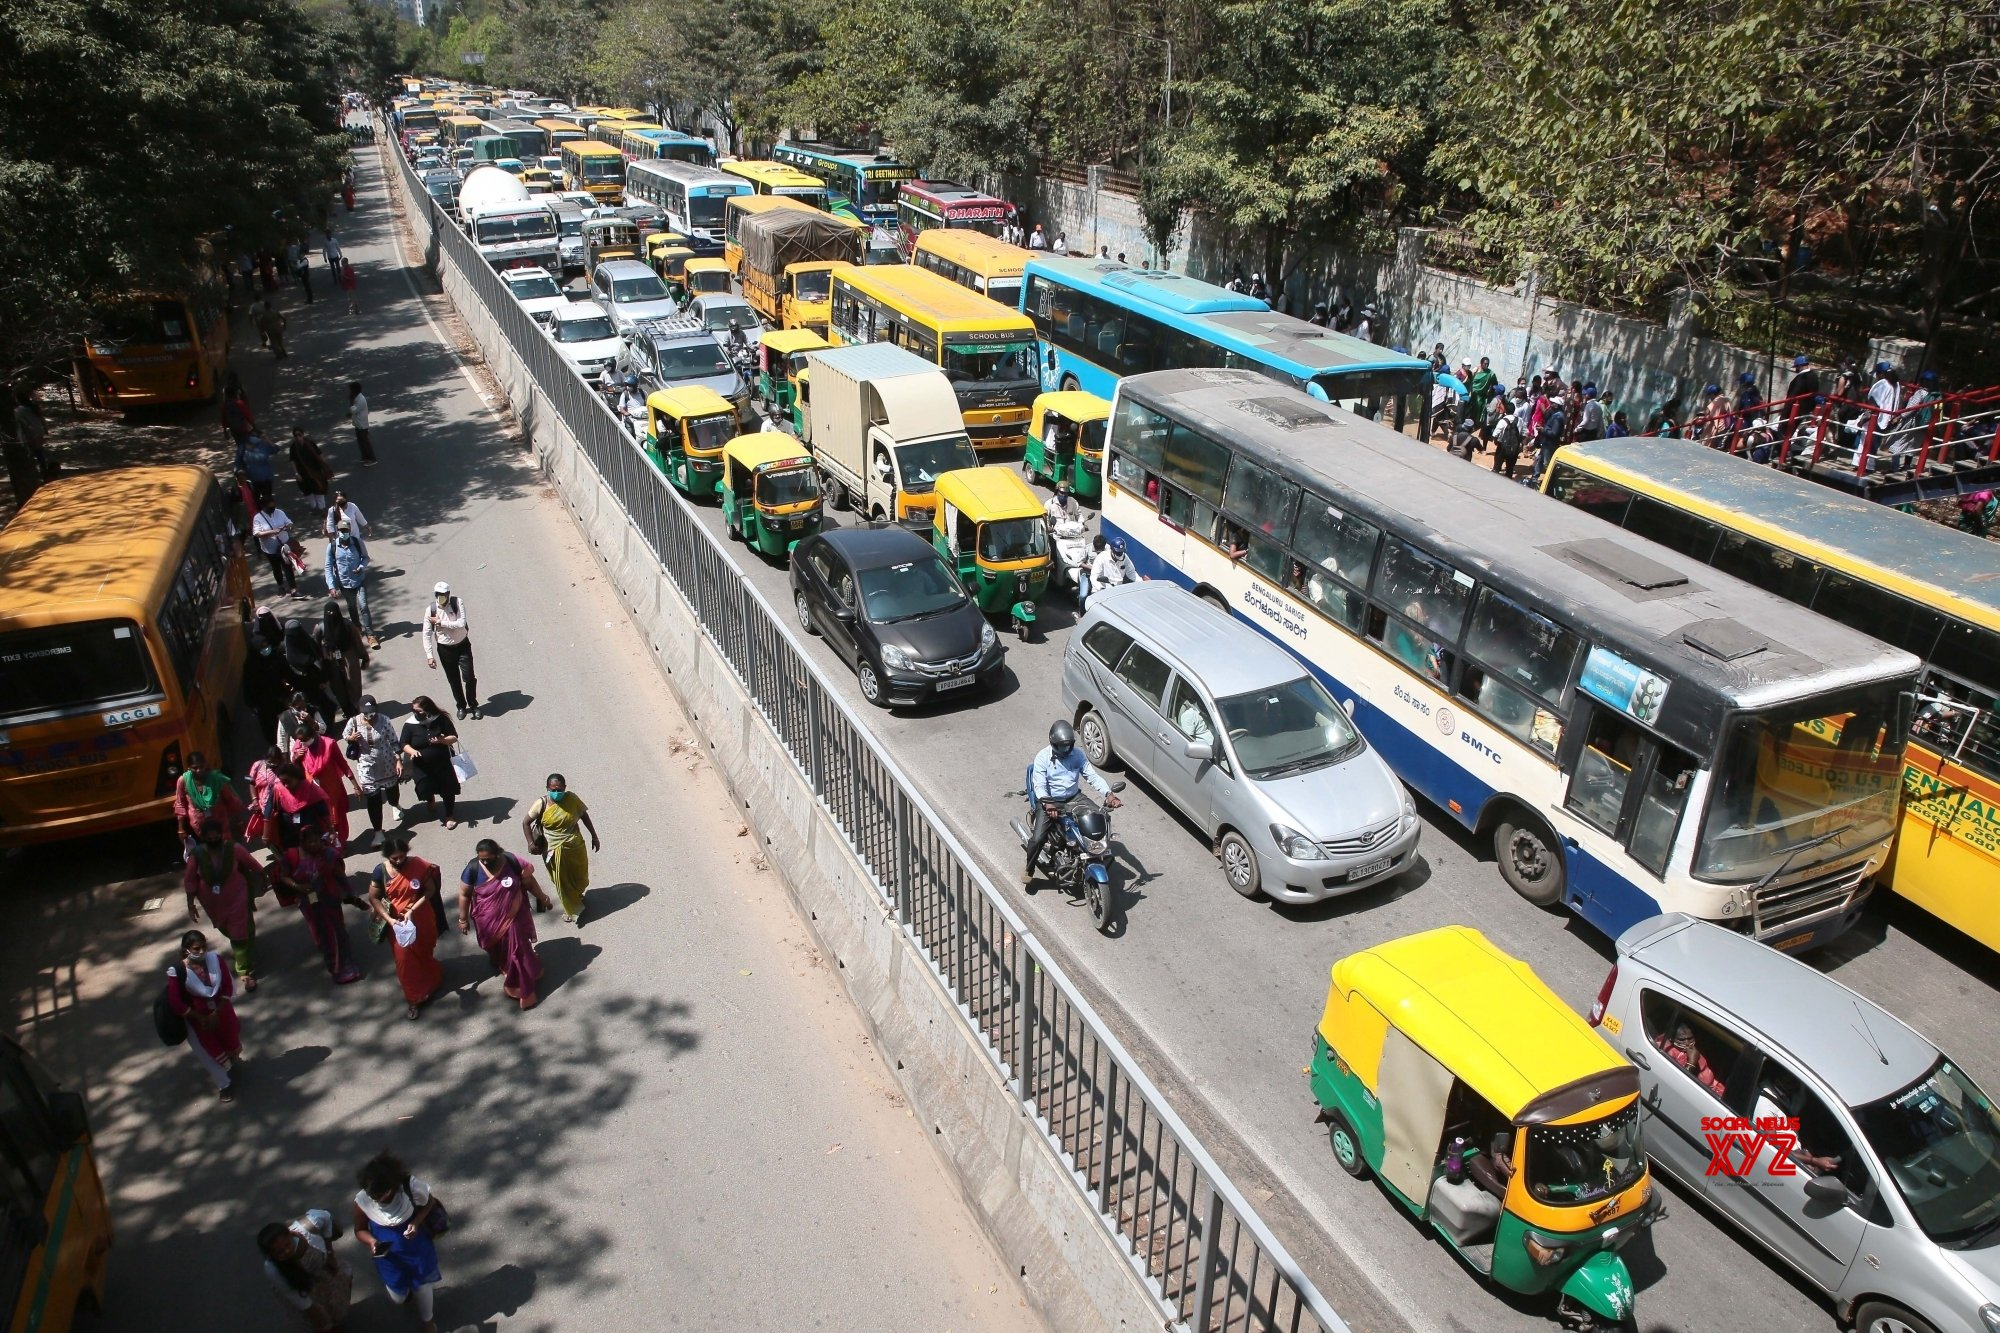 Bengaluru: Traffic jam at Seshadri Road near Freedom park during Teachers protest rally against the state governments, in Bengaluru, Karnataka on Tuesday 23rd February 2021 #Gallery